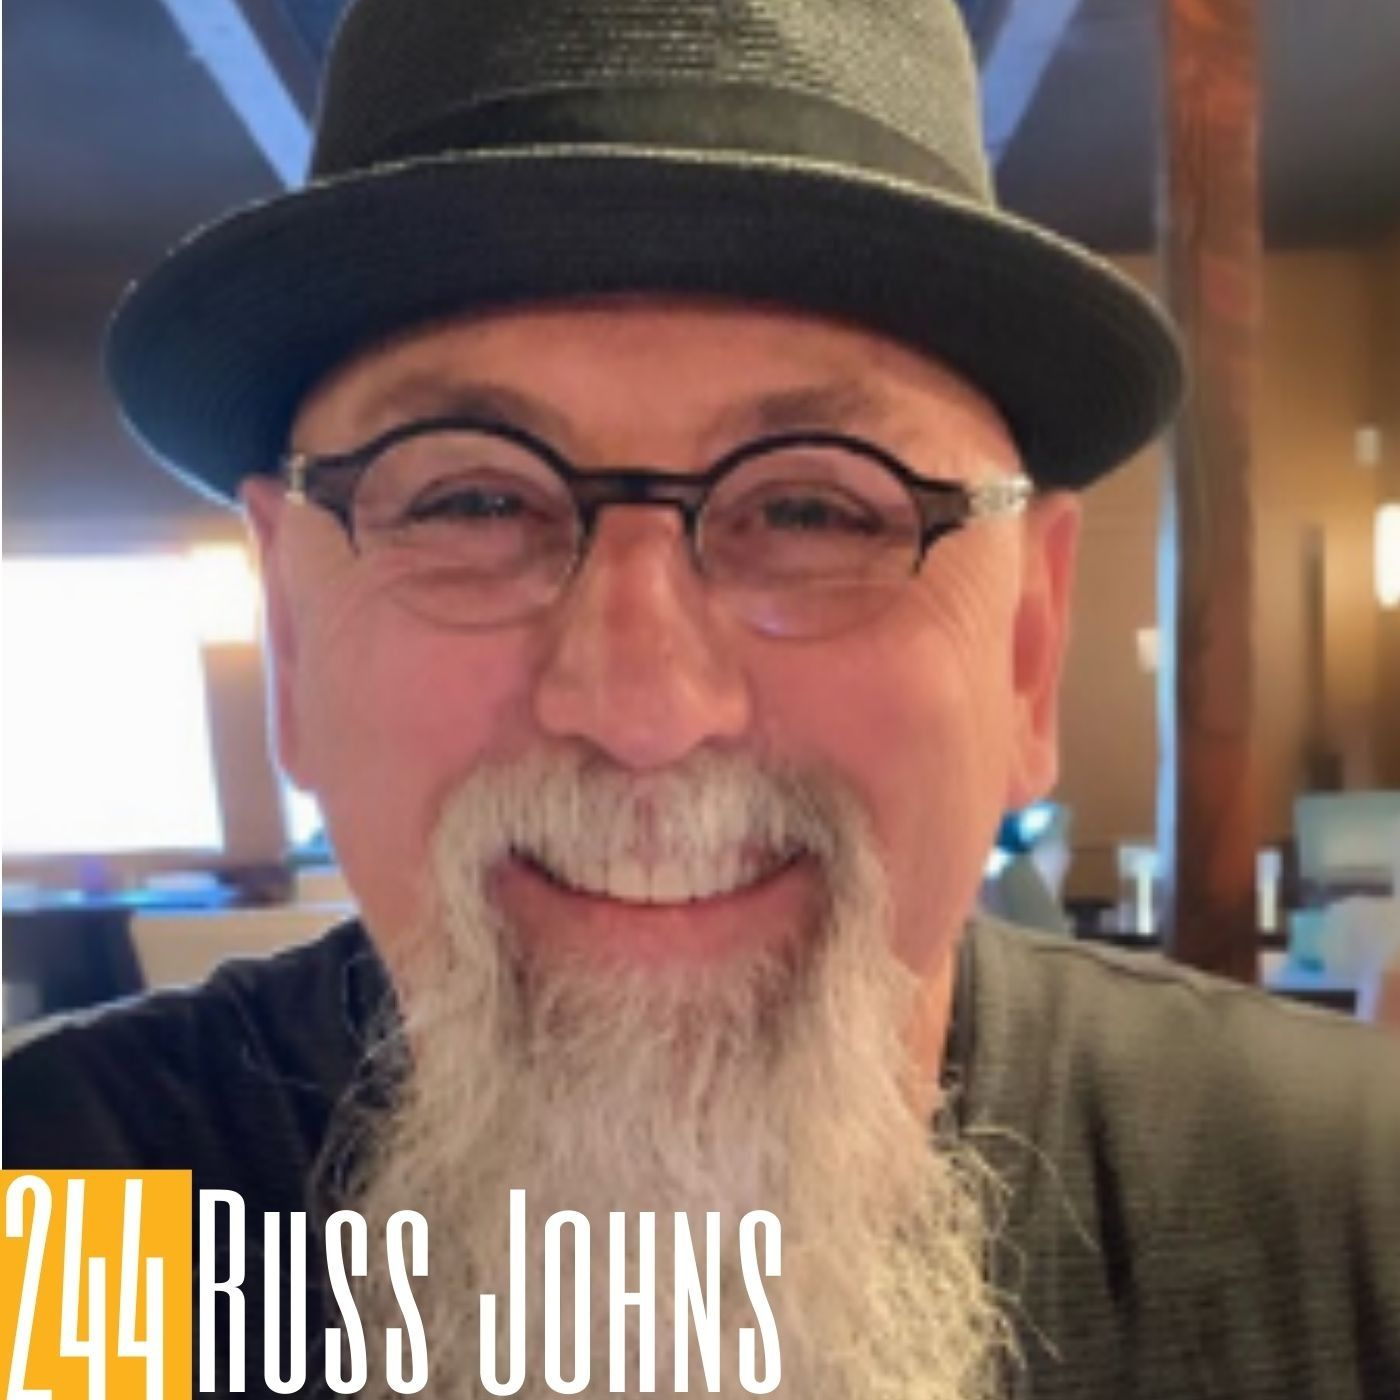 244 Russ Johns - Kindness Is Cool & Smiles Are Free